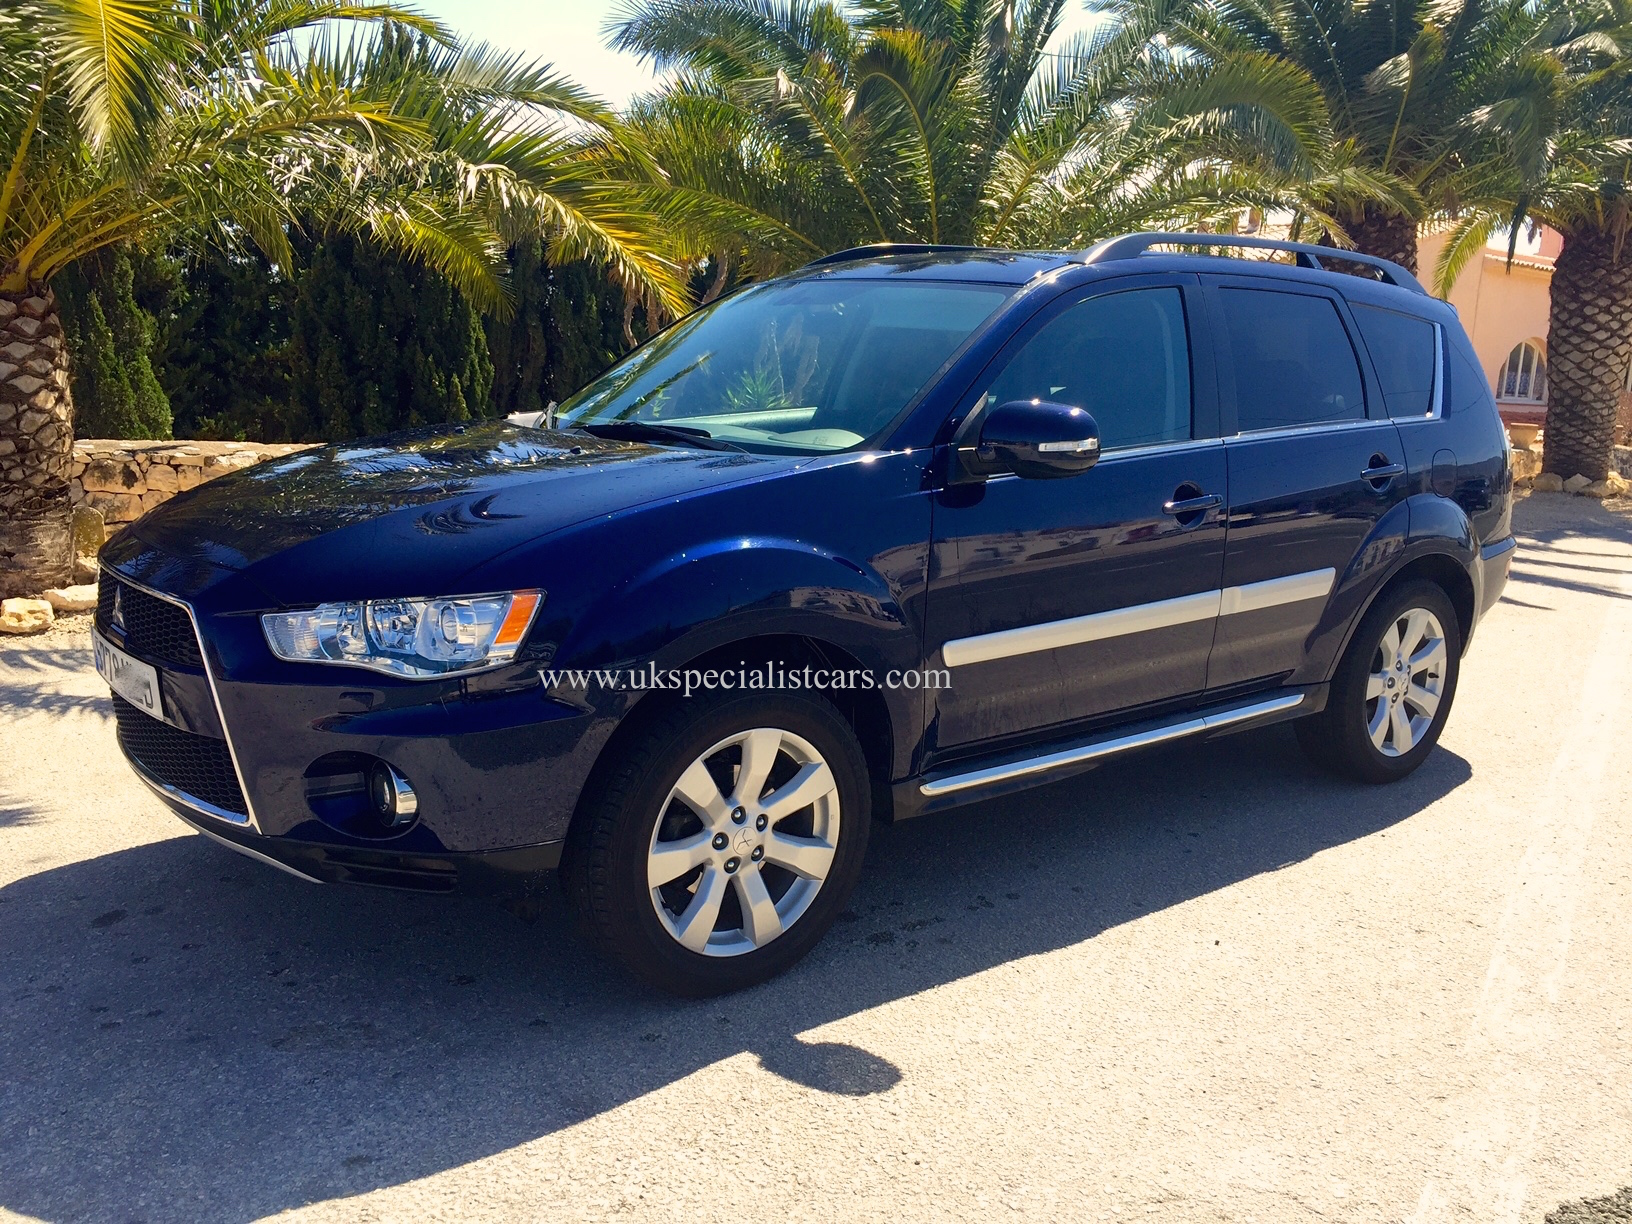 7b9c87e750 UK Specialist Cars have a Mitsubishi Outlander AUTOMATIC Diesel 4WD 7  Seater LHD in Spain